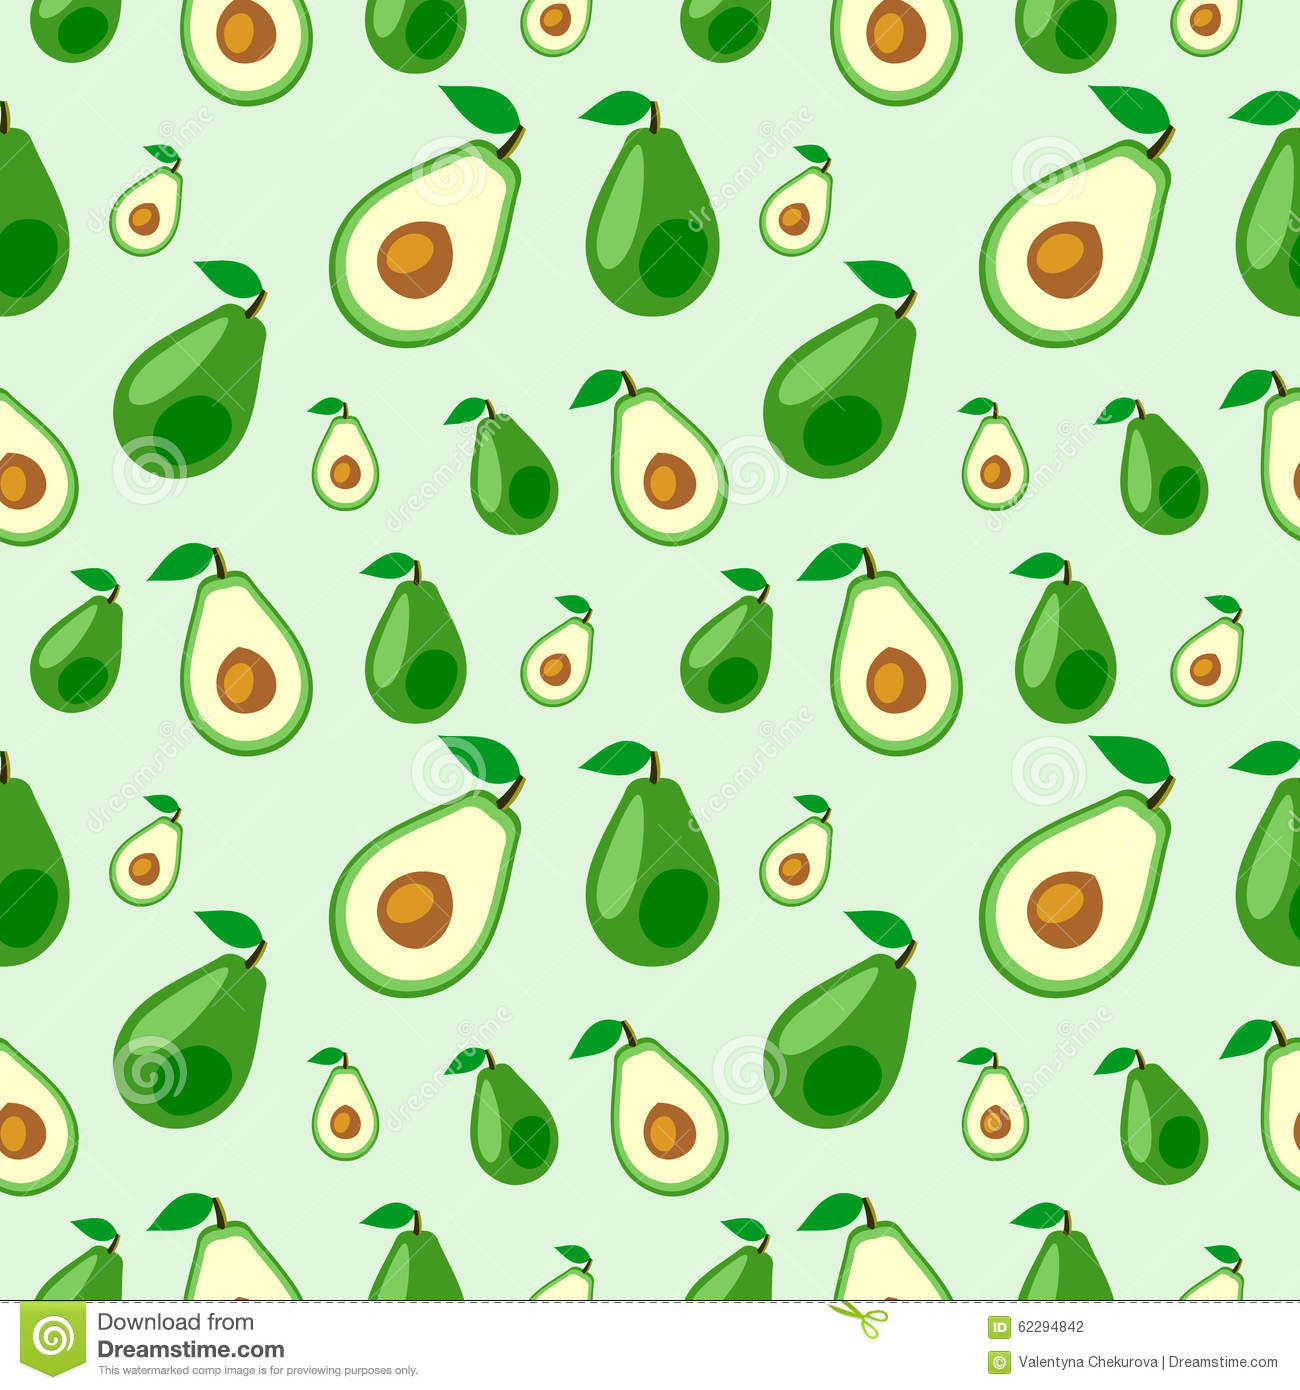 Cute Kiwi Wallpaper Seamless Vector Pattern Fruits Chaotic Background With